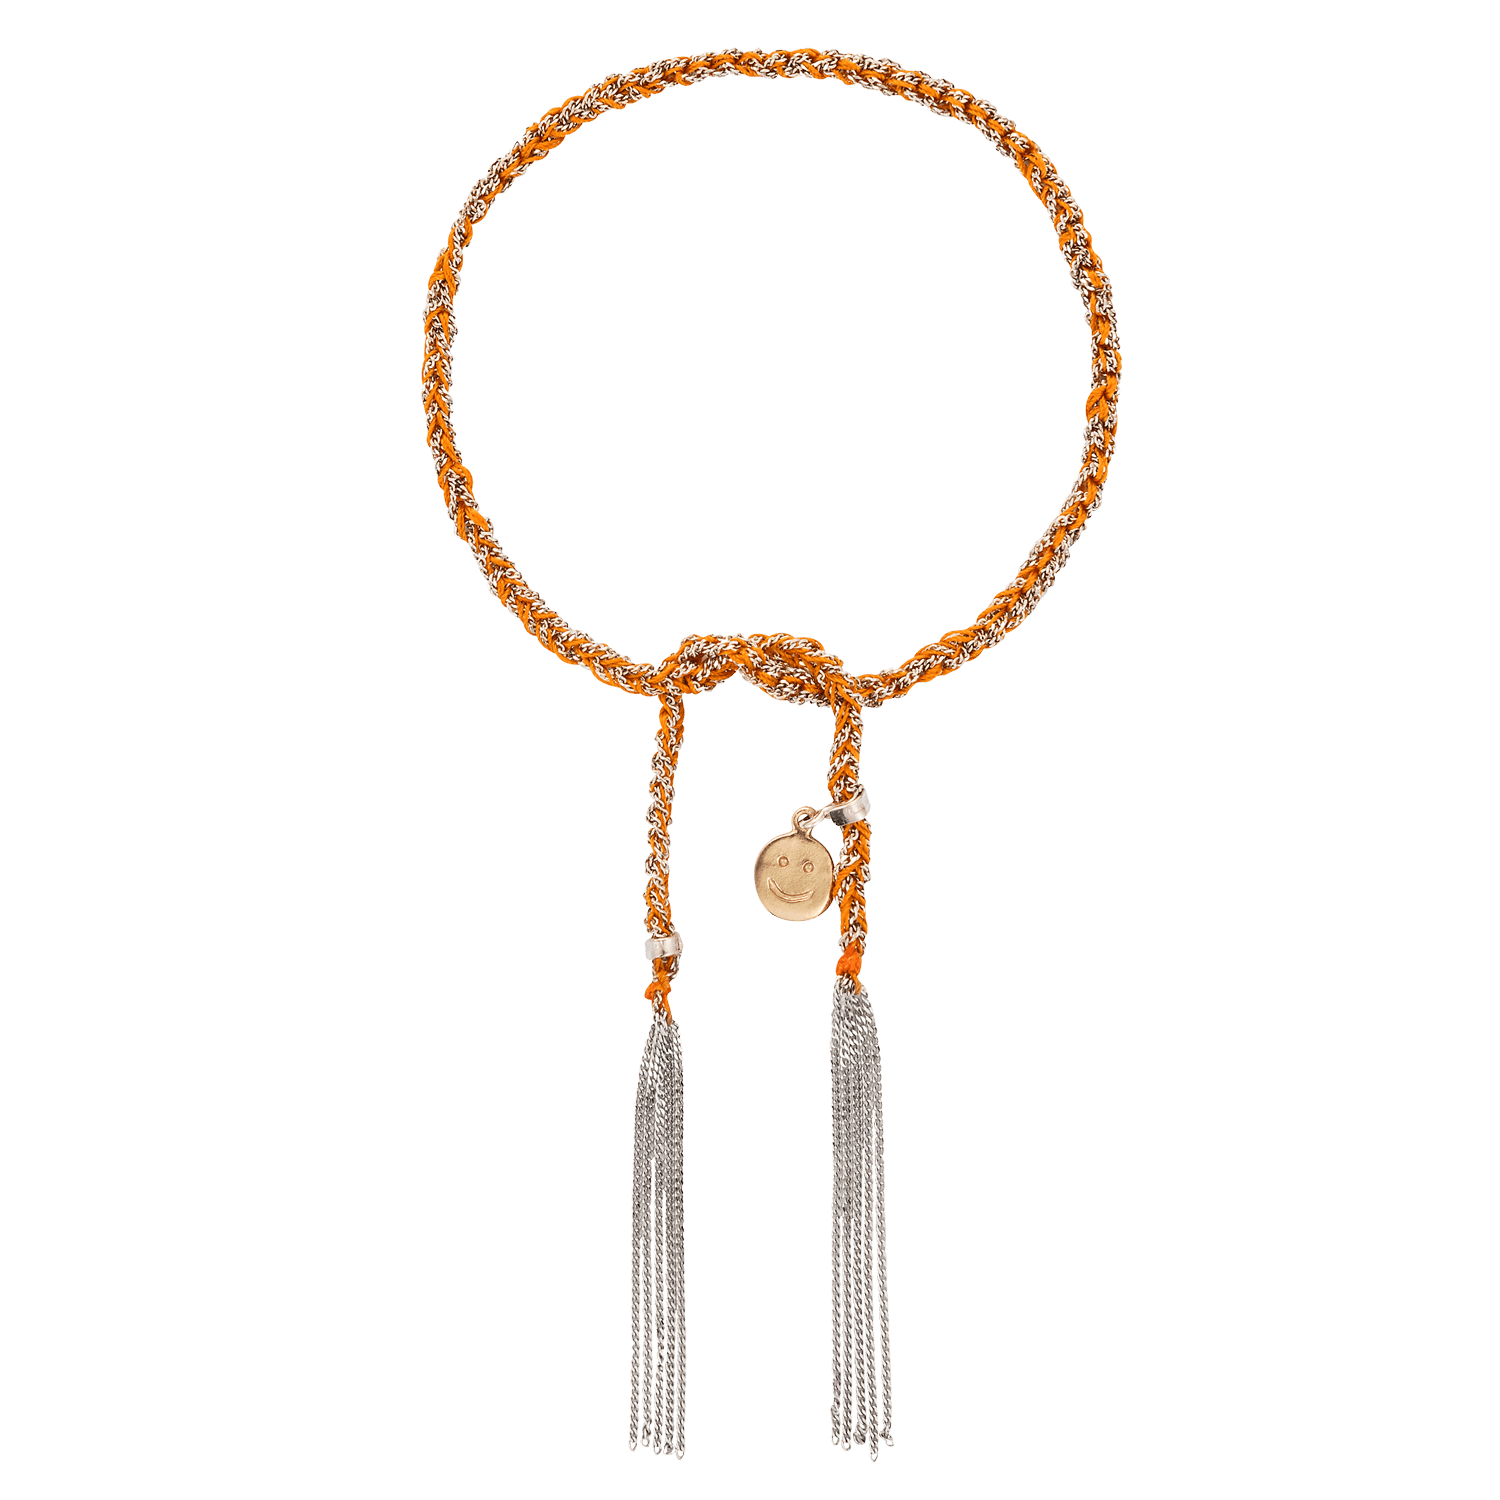 Carolina Bucci Lucky Bracelet with Happiness Charm White Gold